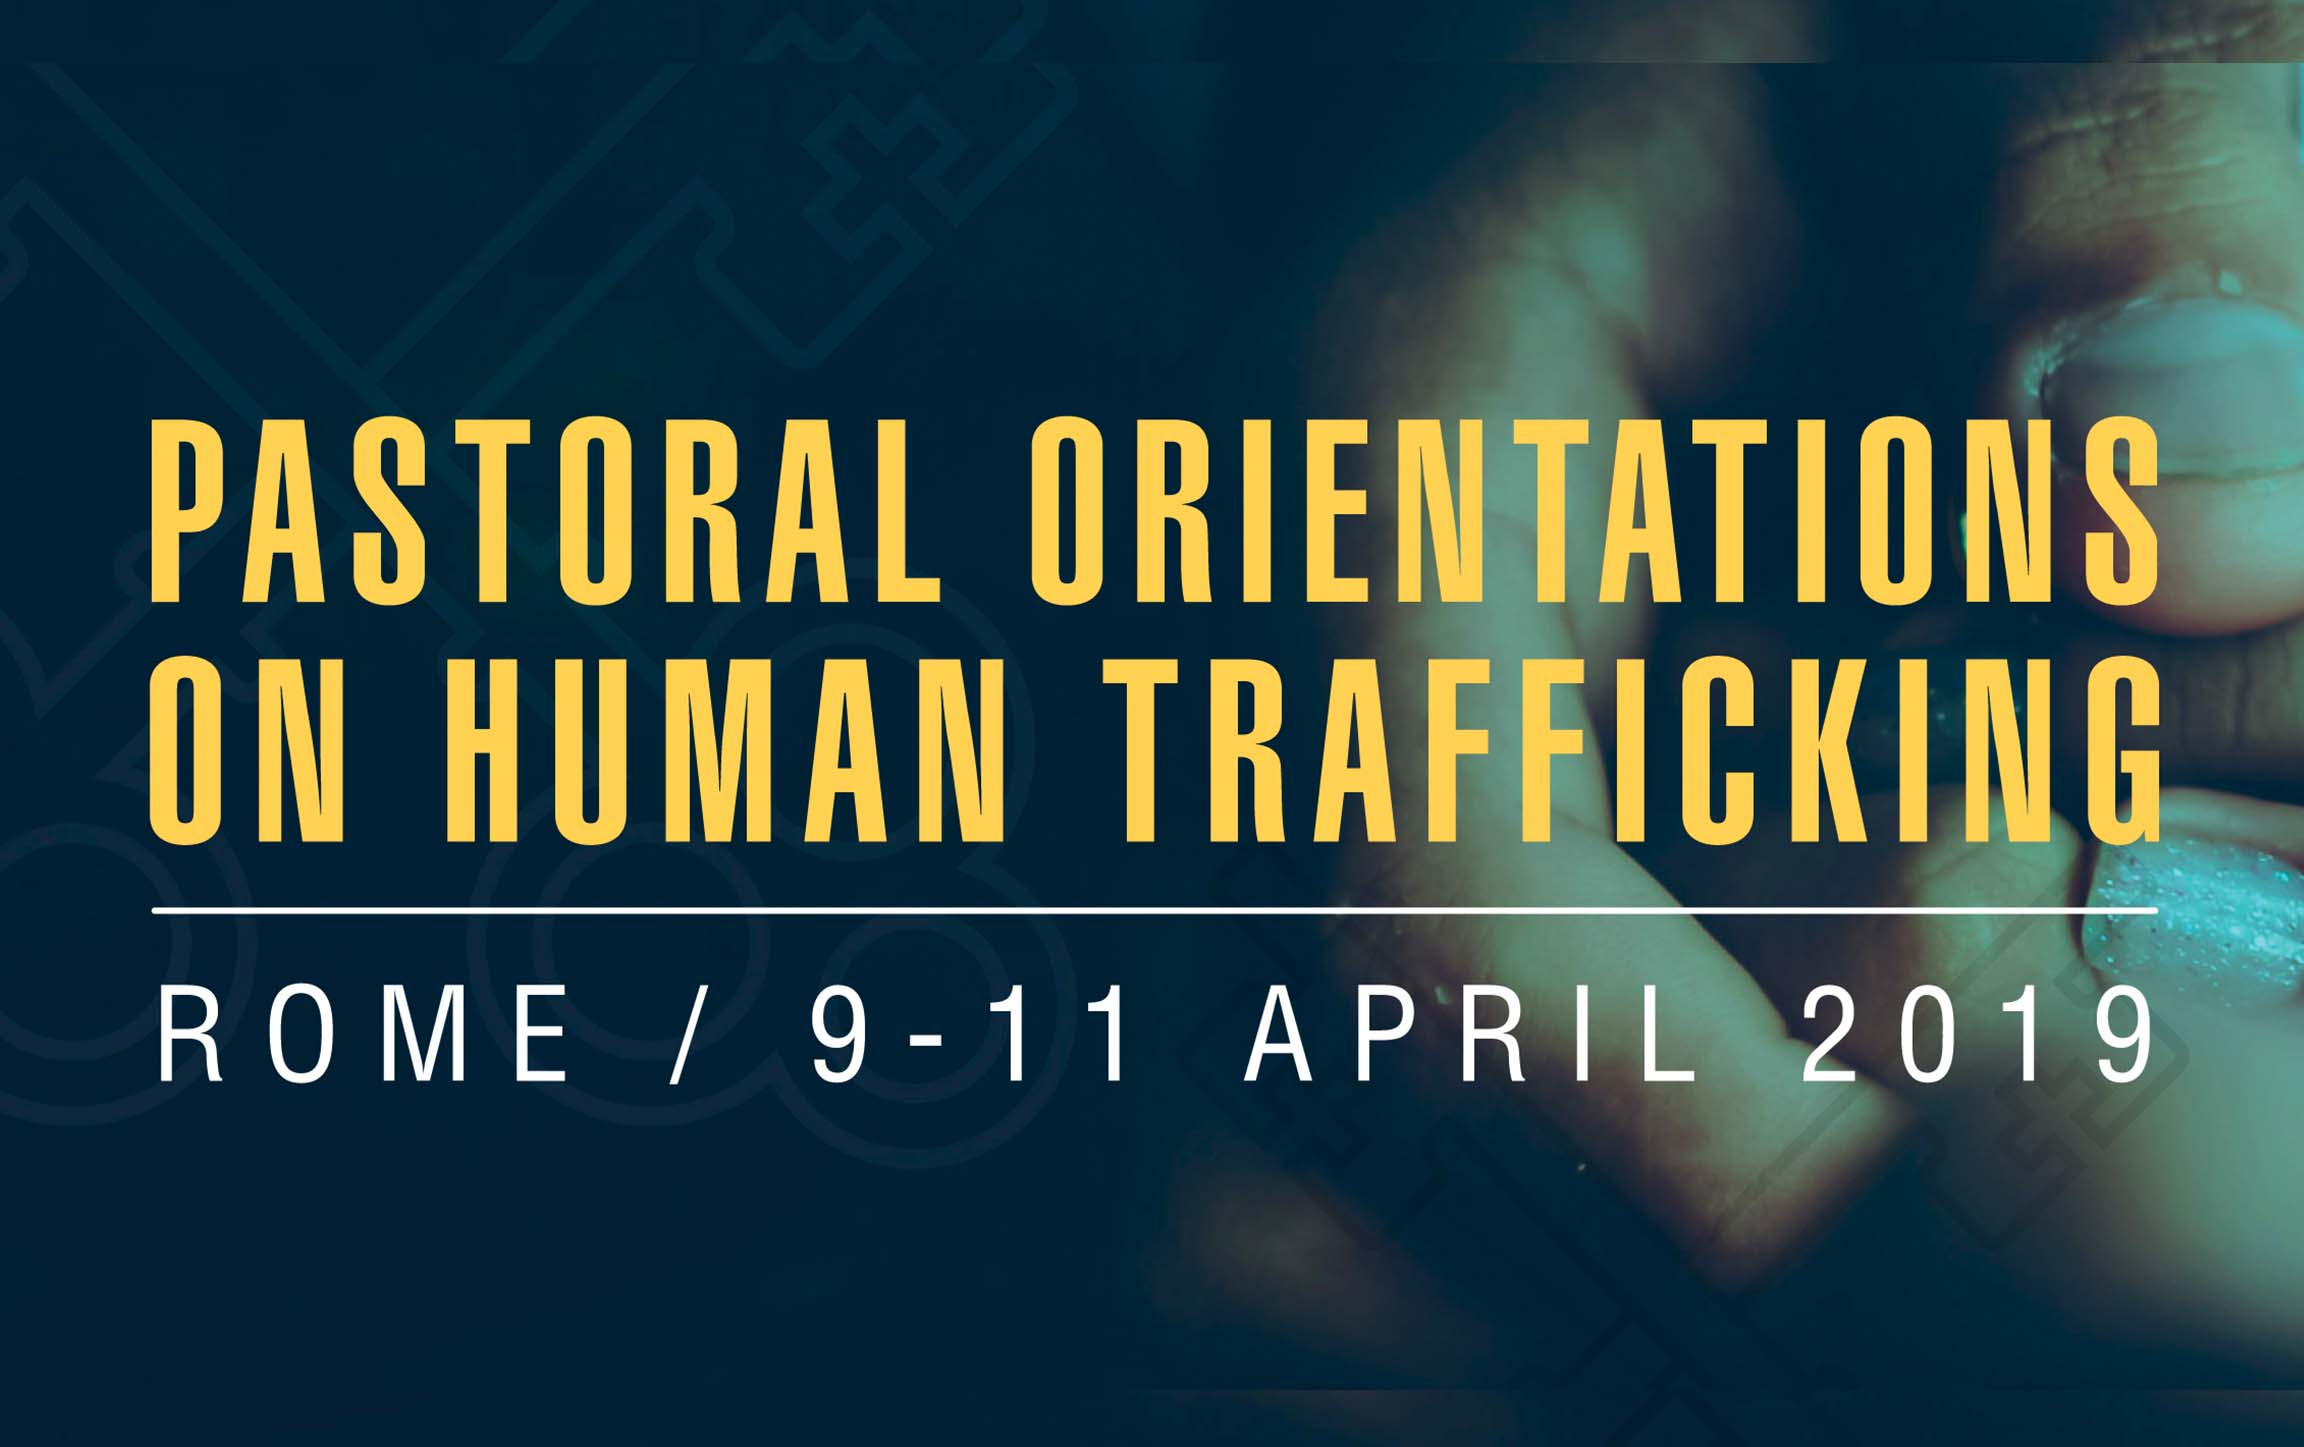 Pastoral Orientations on Human Trafficking official banner (Rome)